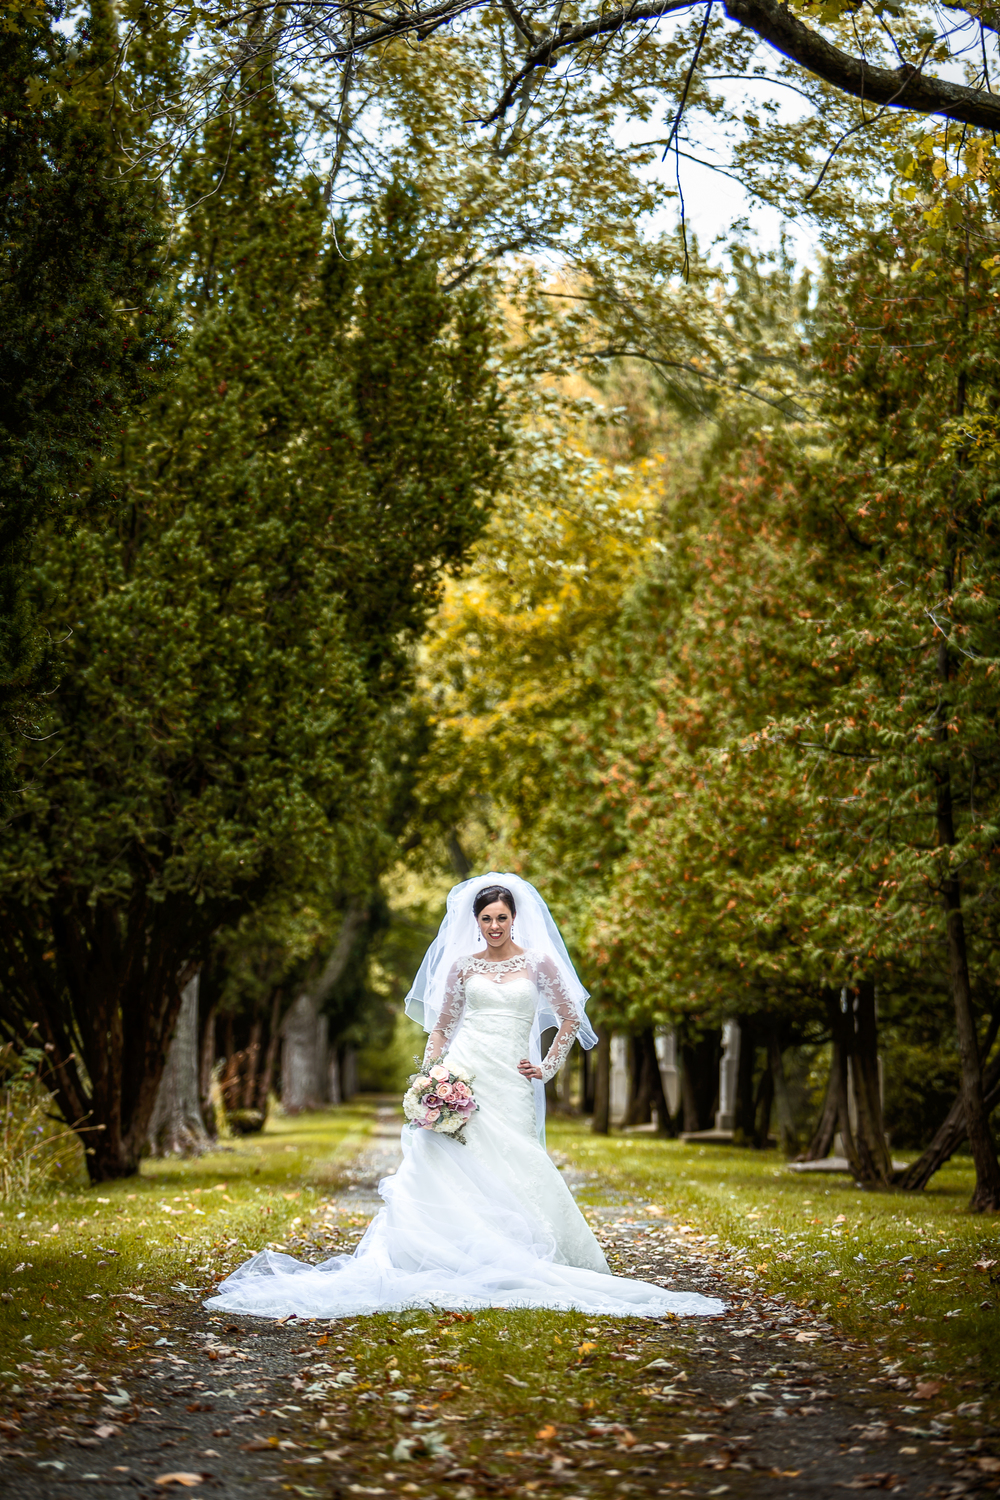 lorrina&Jacob-1041-Edit.jpg